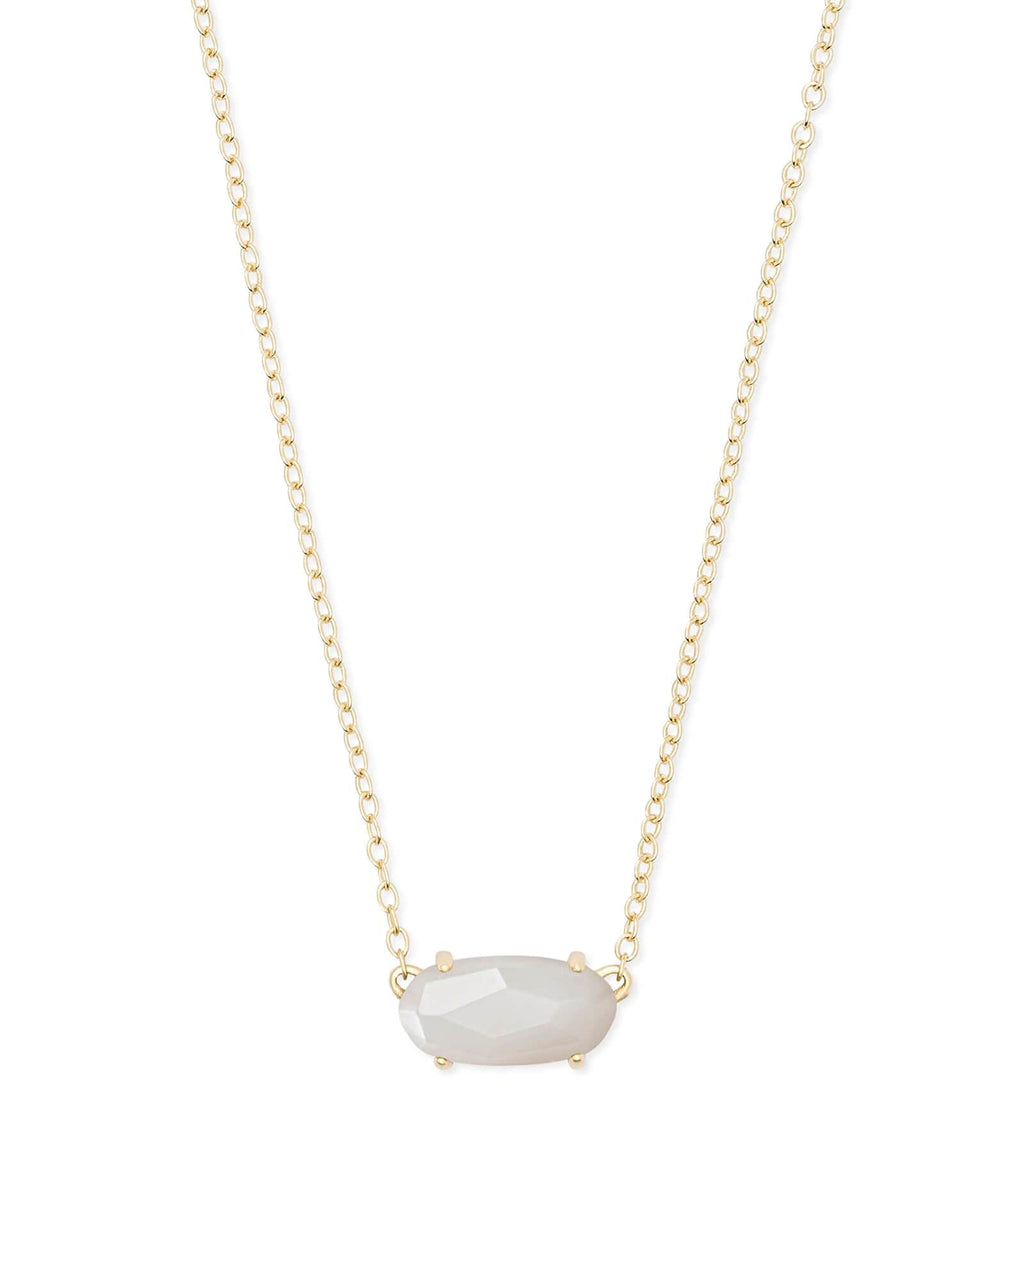 Kendra Scott Ever Necklace - Ivory Mother Of Pearl